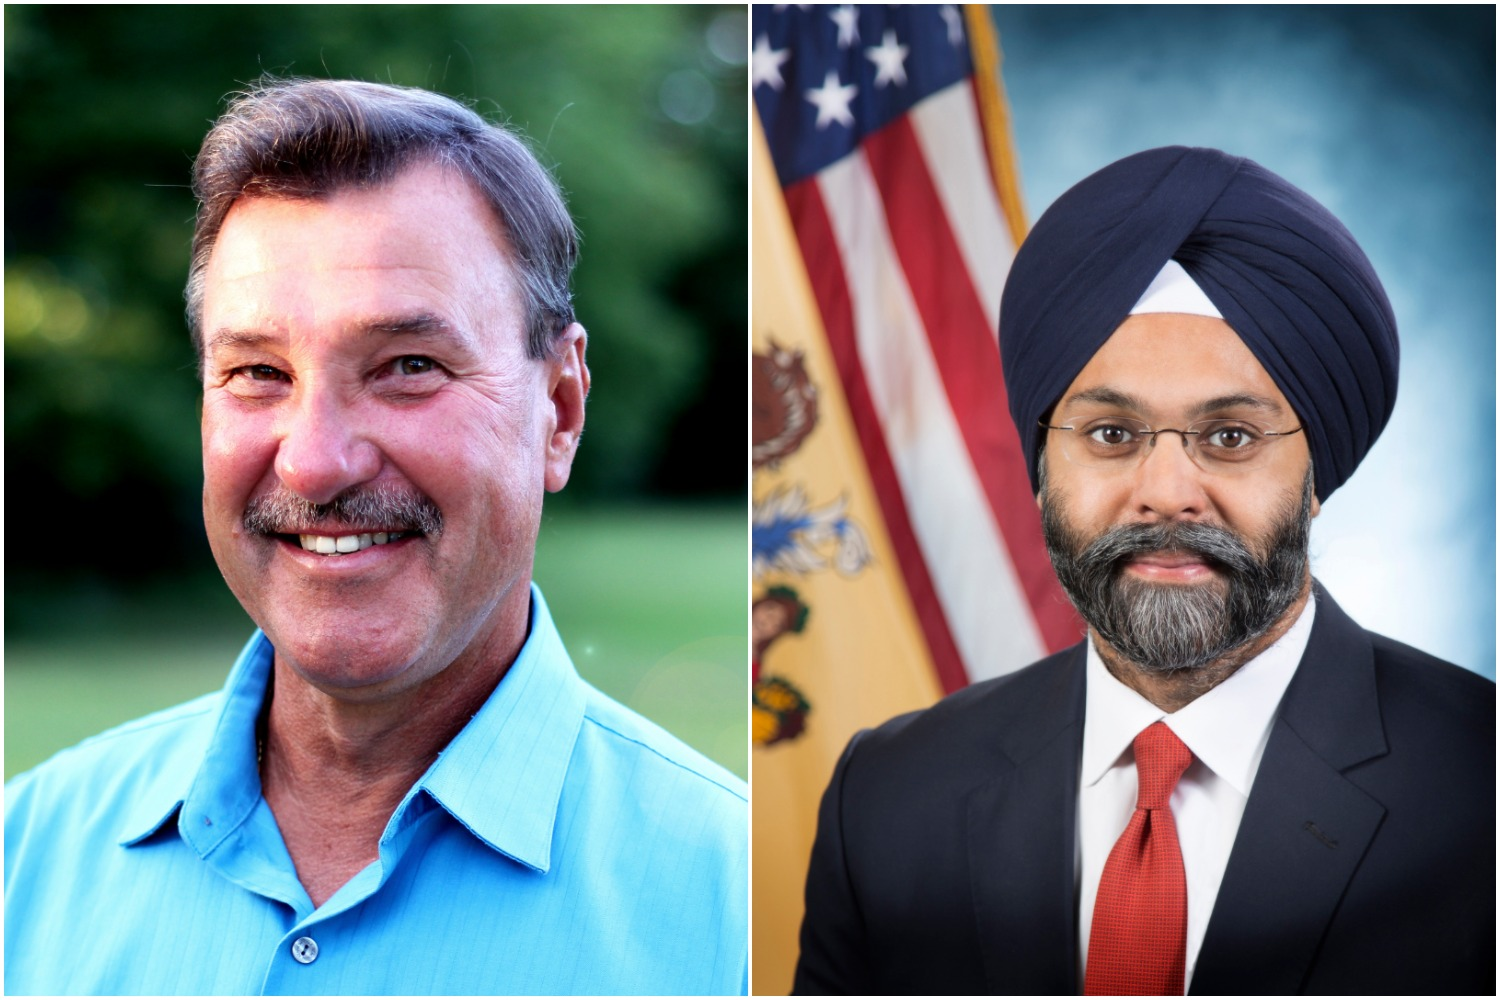 Brick Councilman Jim Fozman (R) and Attorney General Gurbir Grewal (D) (Photos: File)